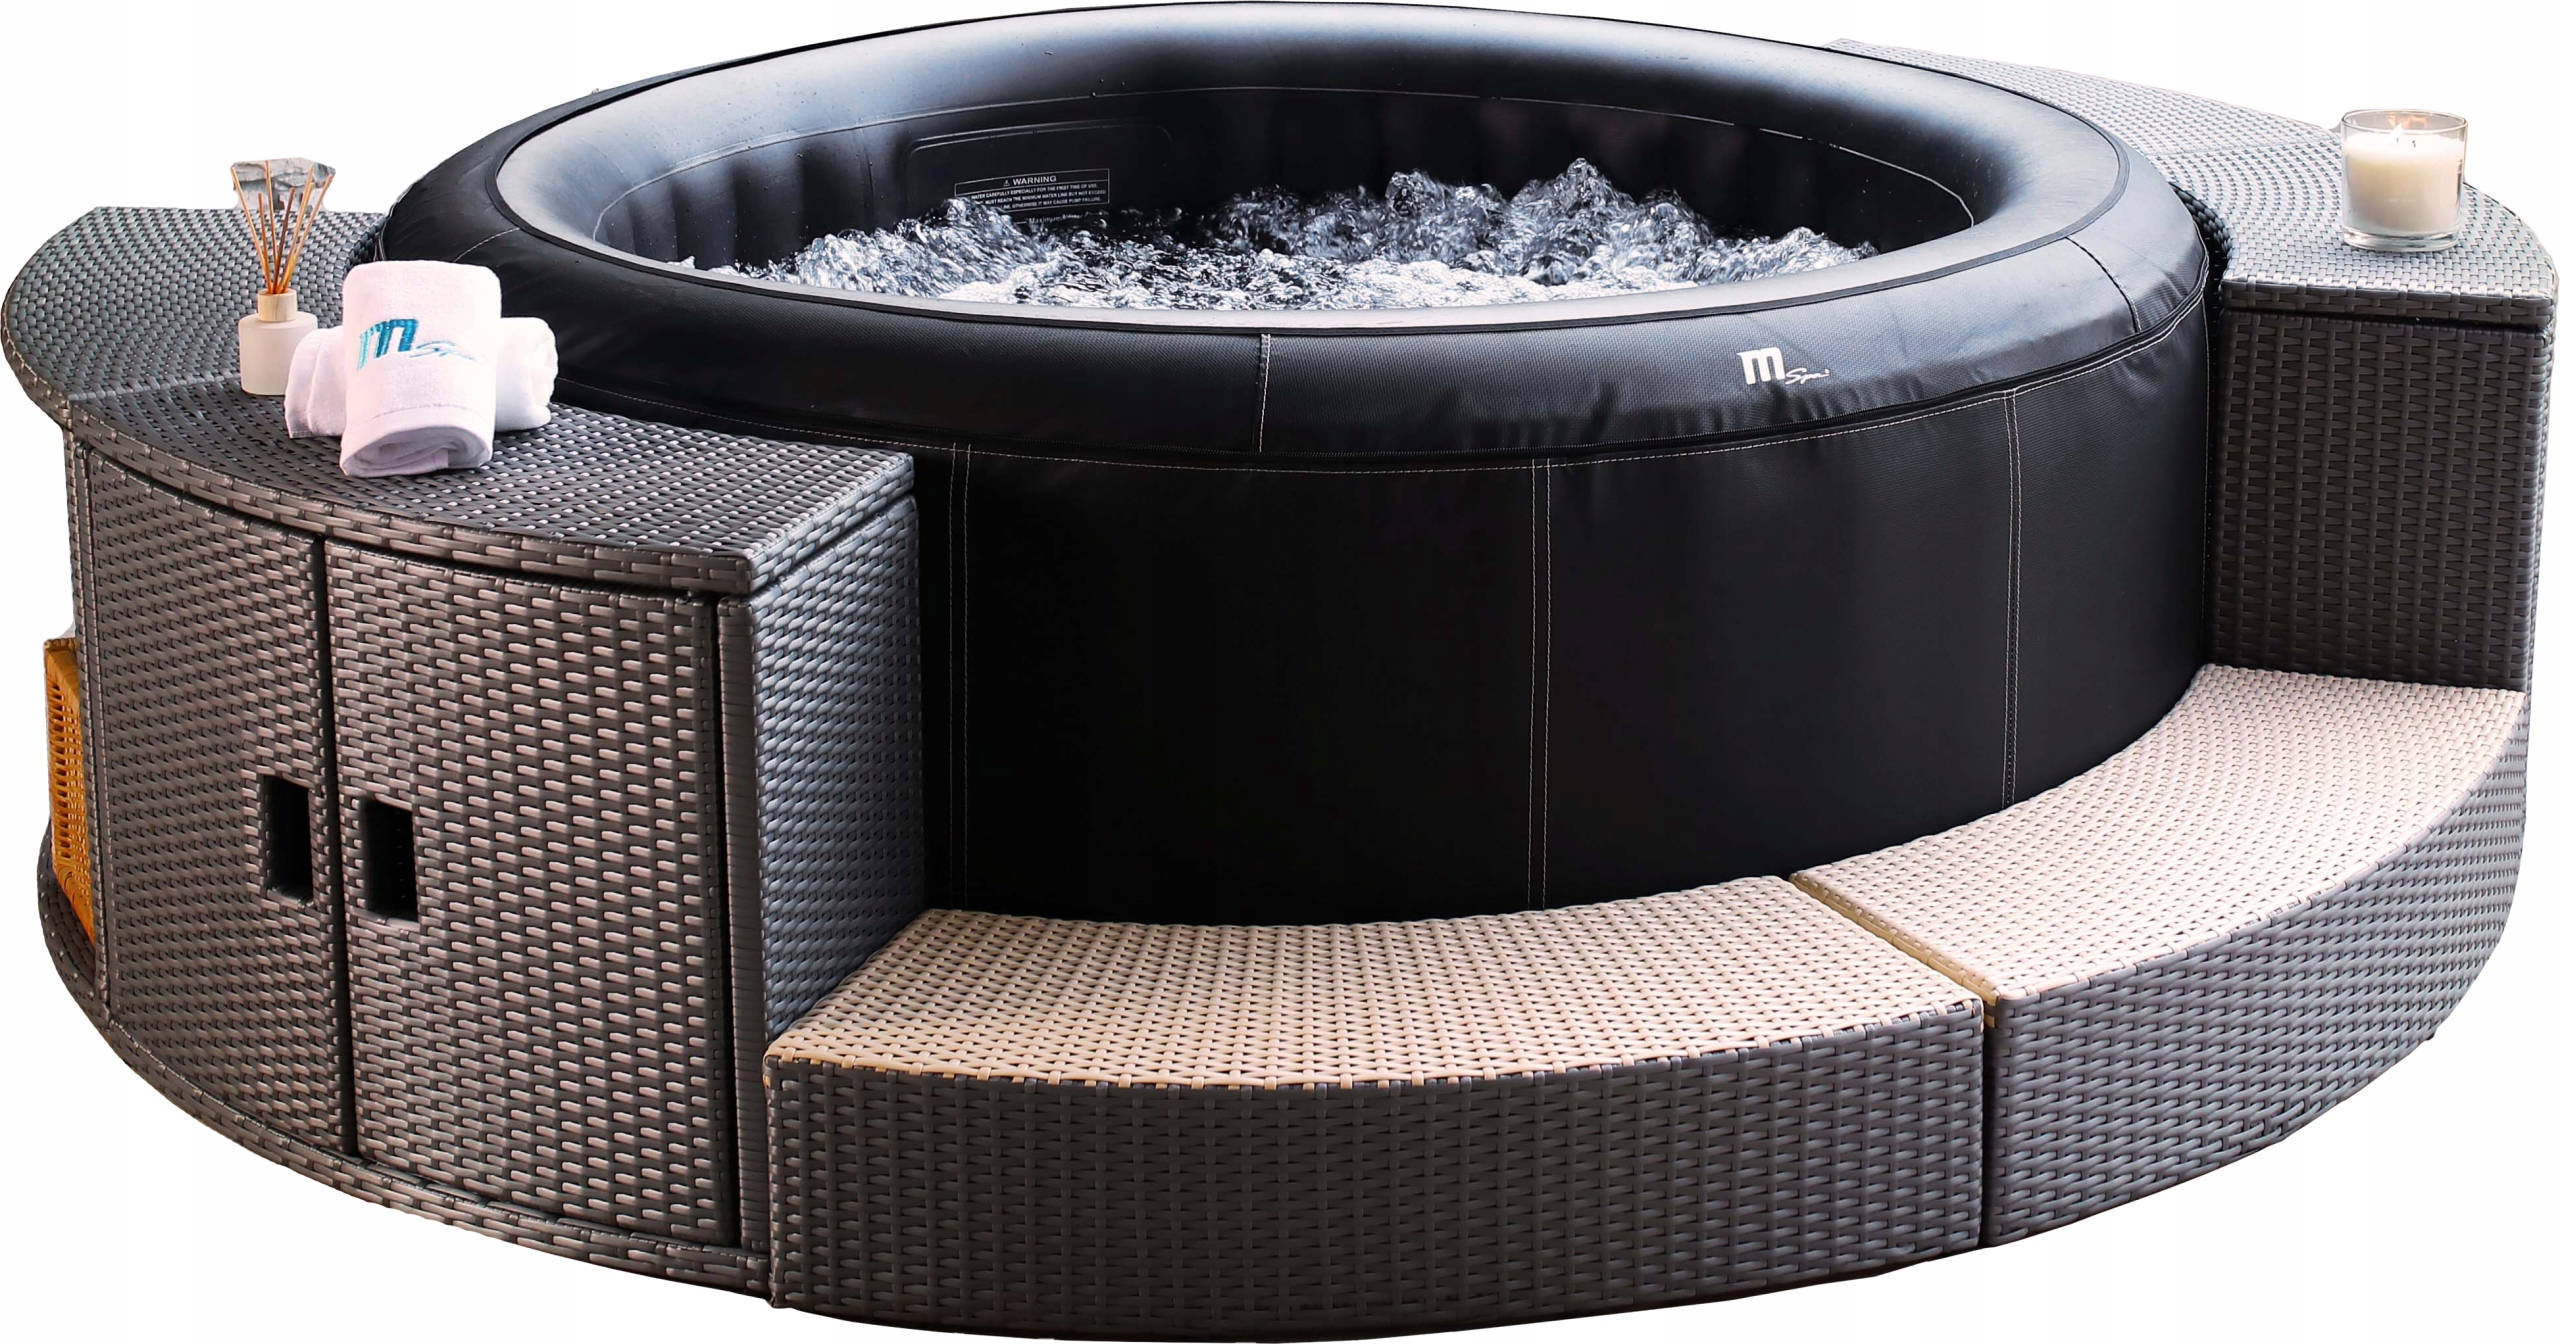 OBUDOWA SPA MEBLE DO JACUZZI DMUCHANE SPA RATTAN